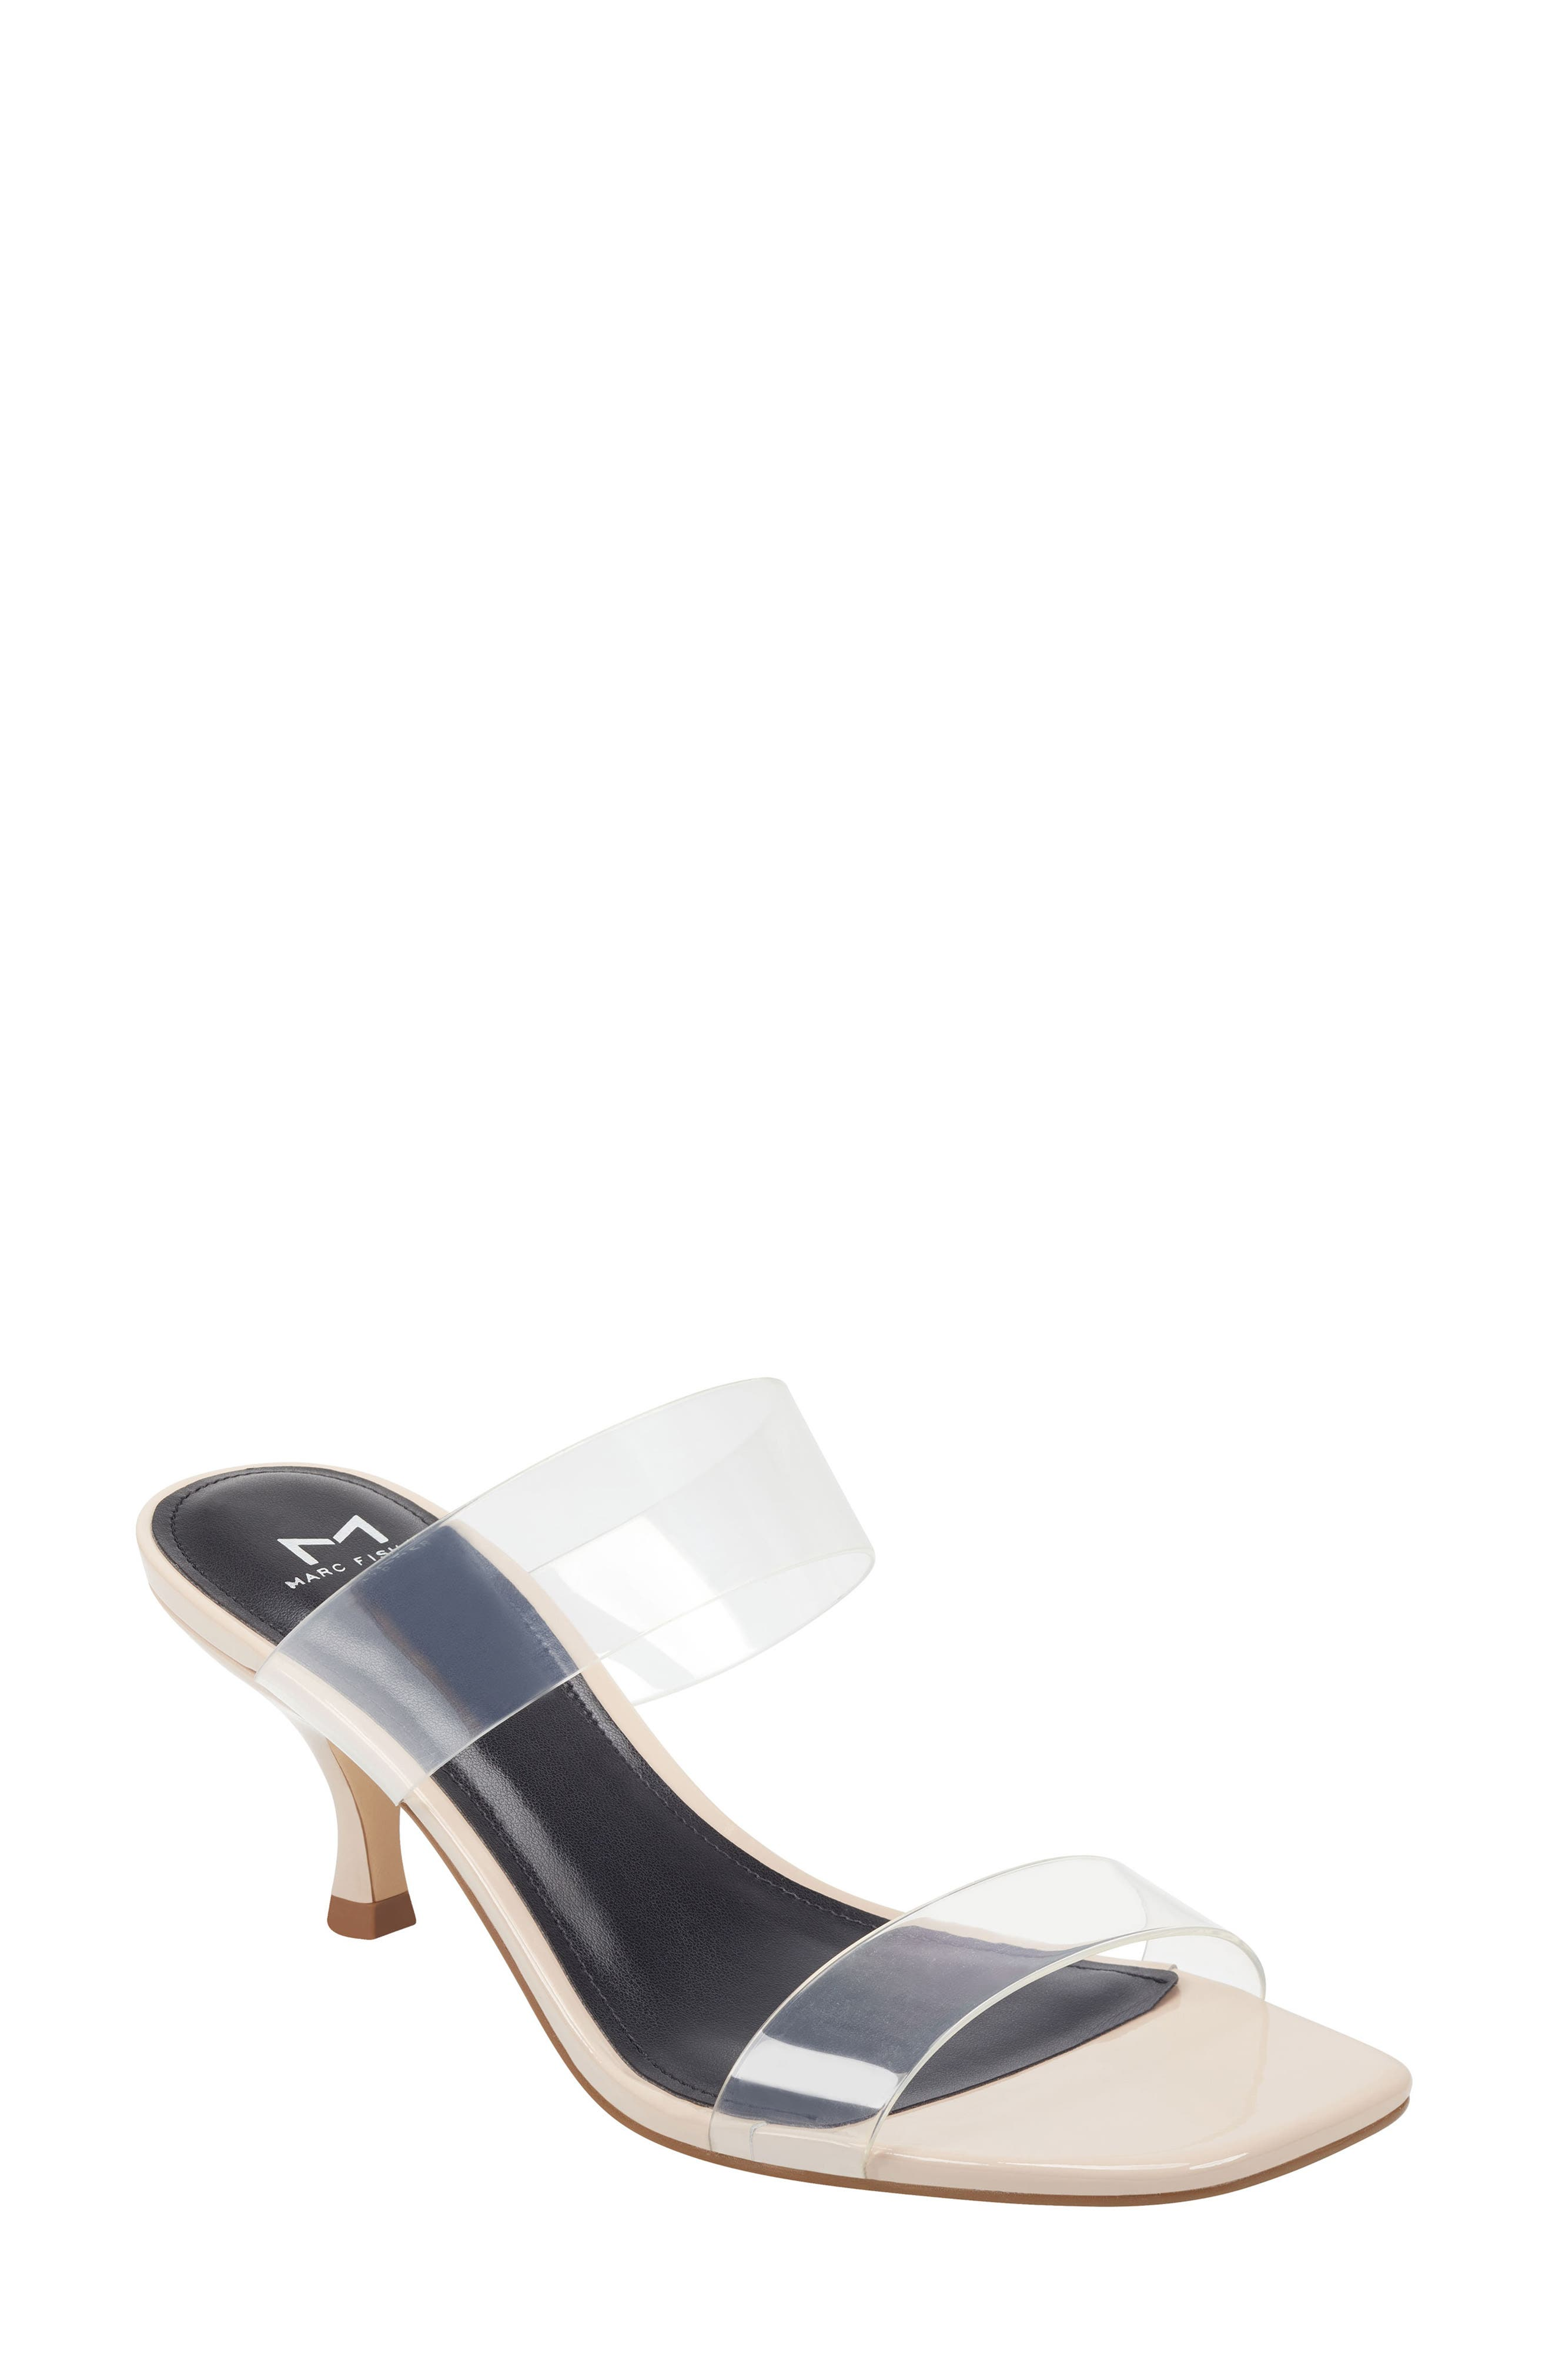 Take on this season\\\'s translucent trend with this two-band slide sandal set upon a slightly flared heel. Style Name: Marc Fisher Ltd Guadia Sandal (Women). Style Number: 5994012 3. Available in stores.